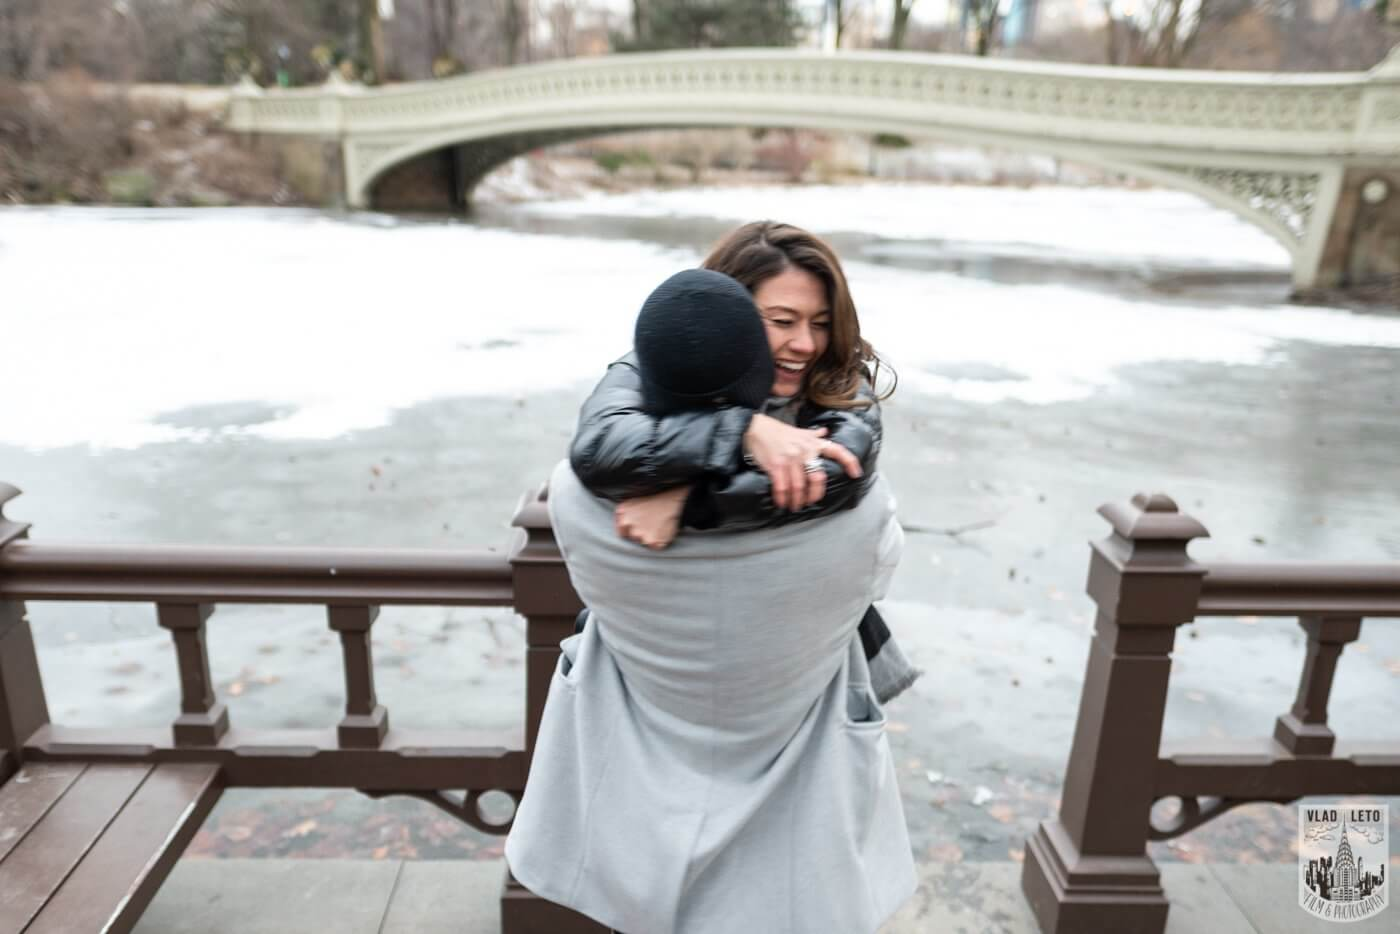 Photo 5 Bow bridge surprise marriage proposal. | VladLeto